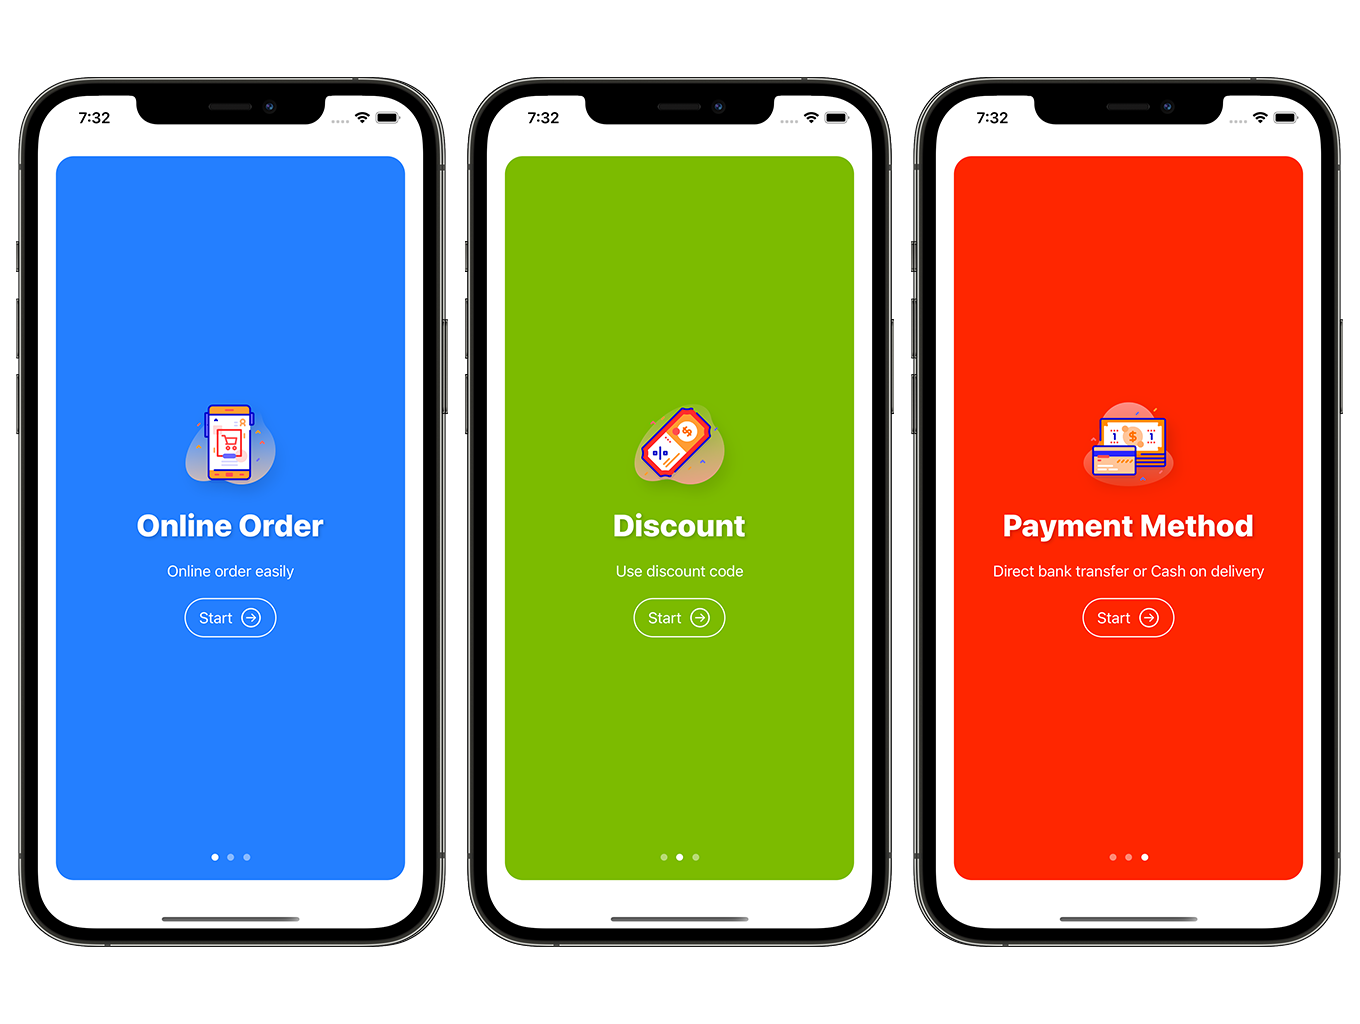 SwiftUI Grocery App | Woocommerce Full iOS Application - 1